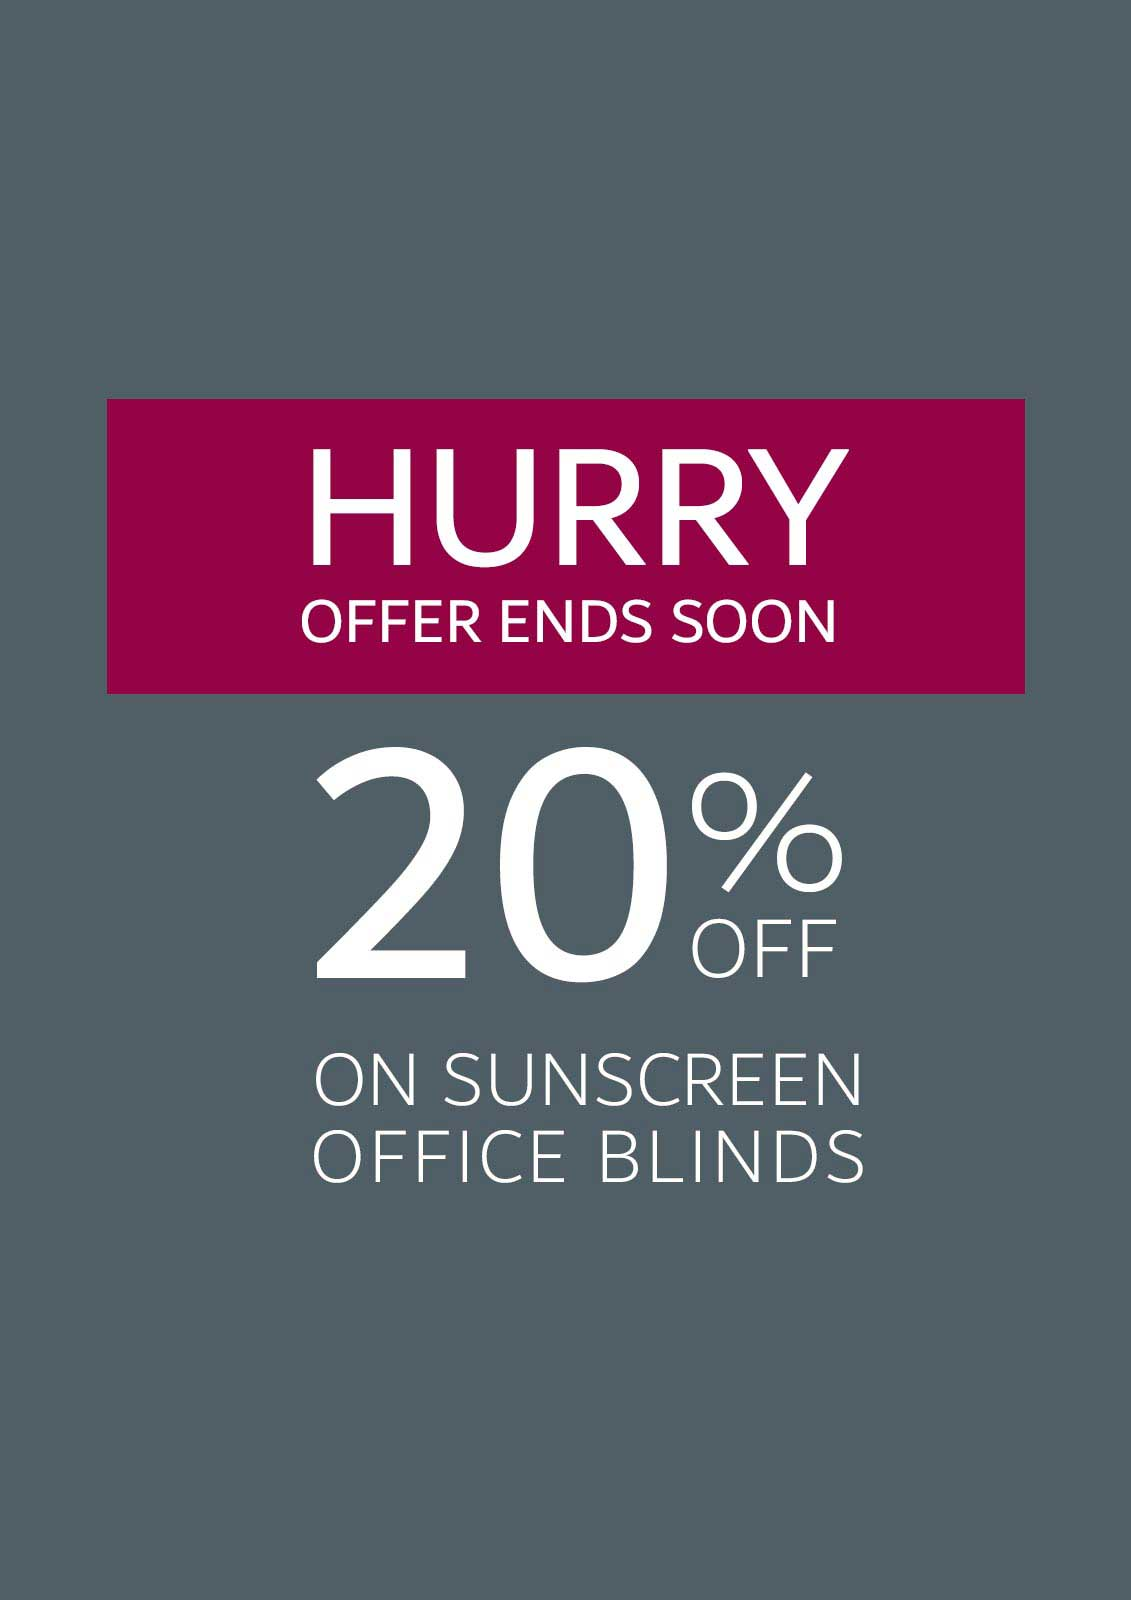 20% OFF ON SUNSCREEN OFFICE BLINDS